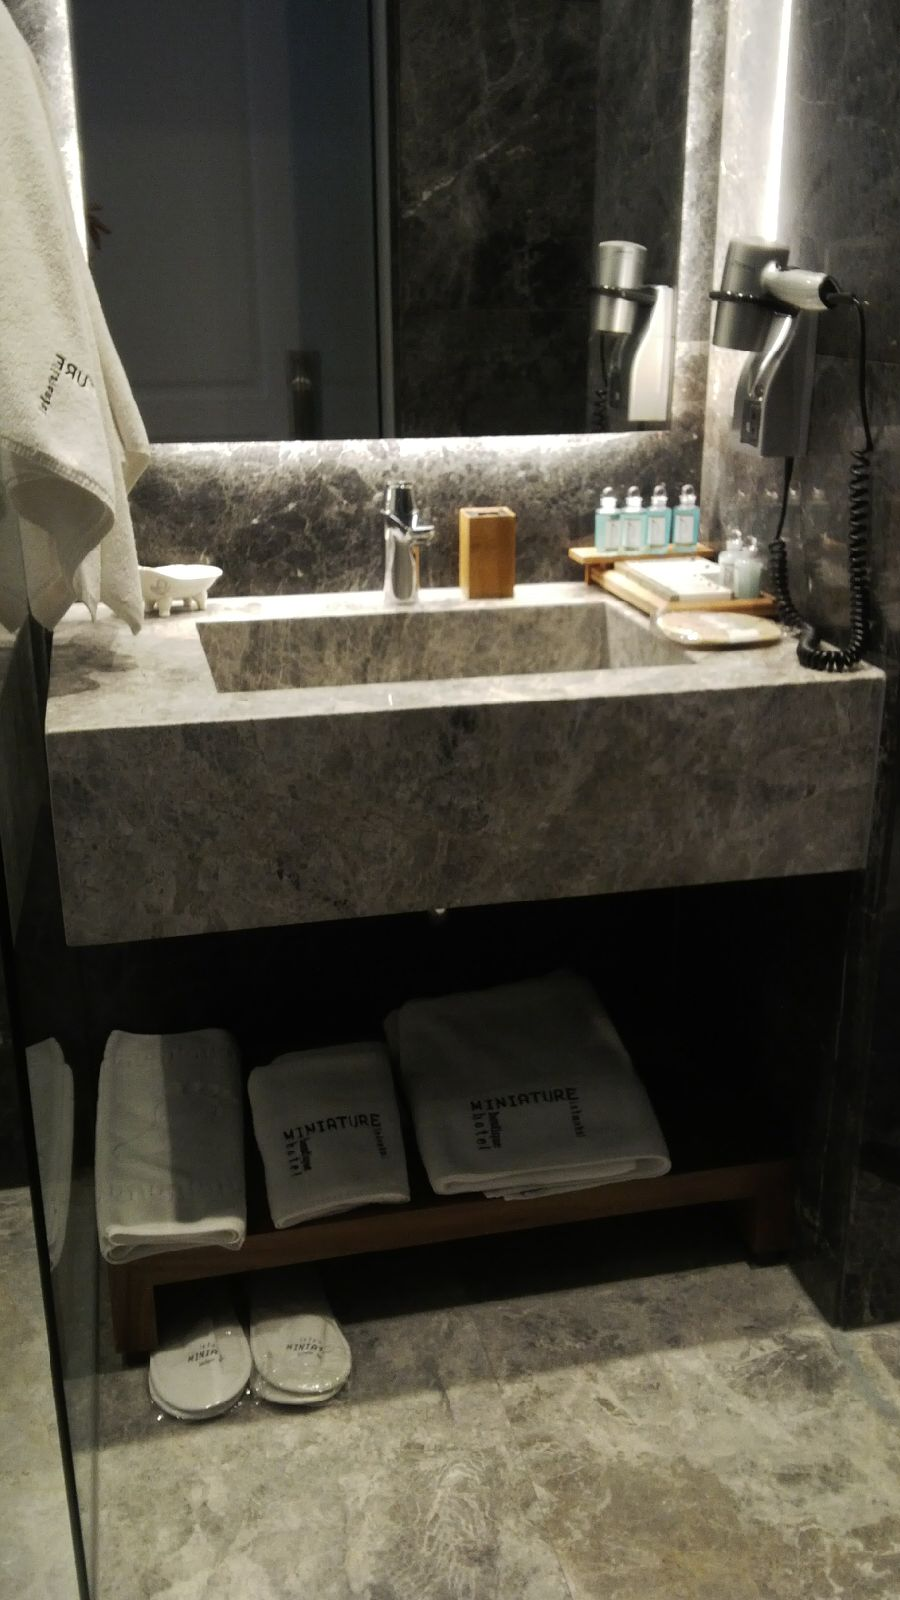 Hotel Miniature bathroom